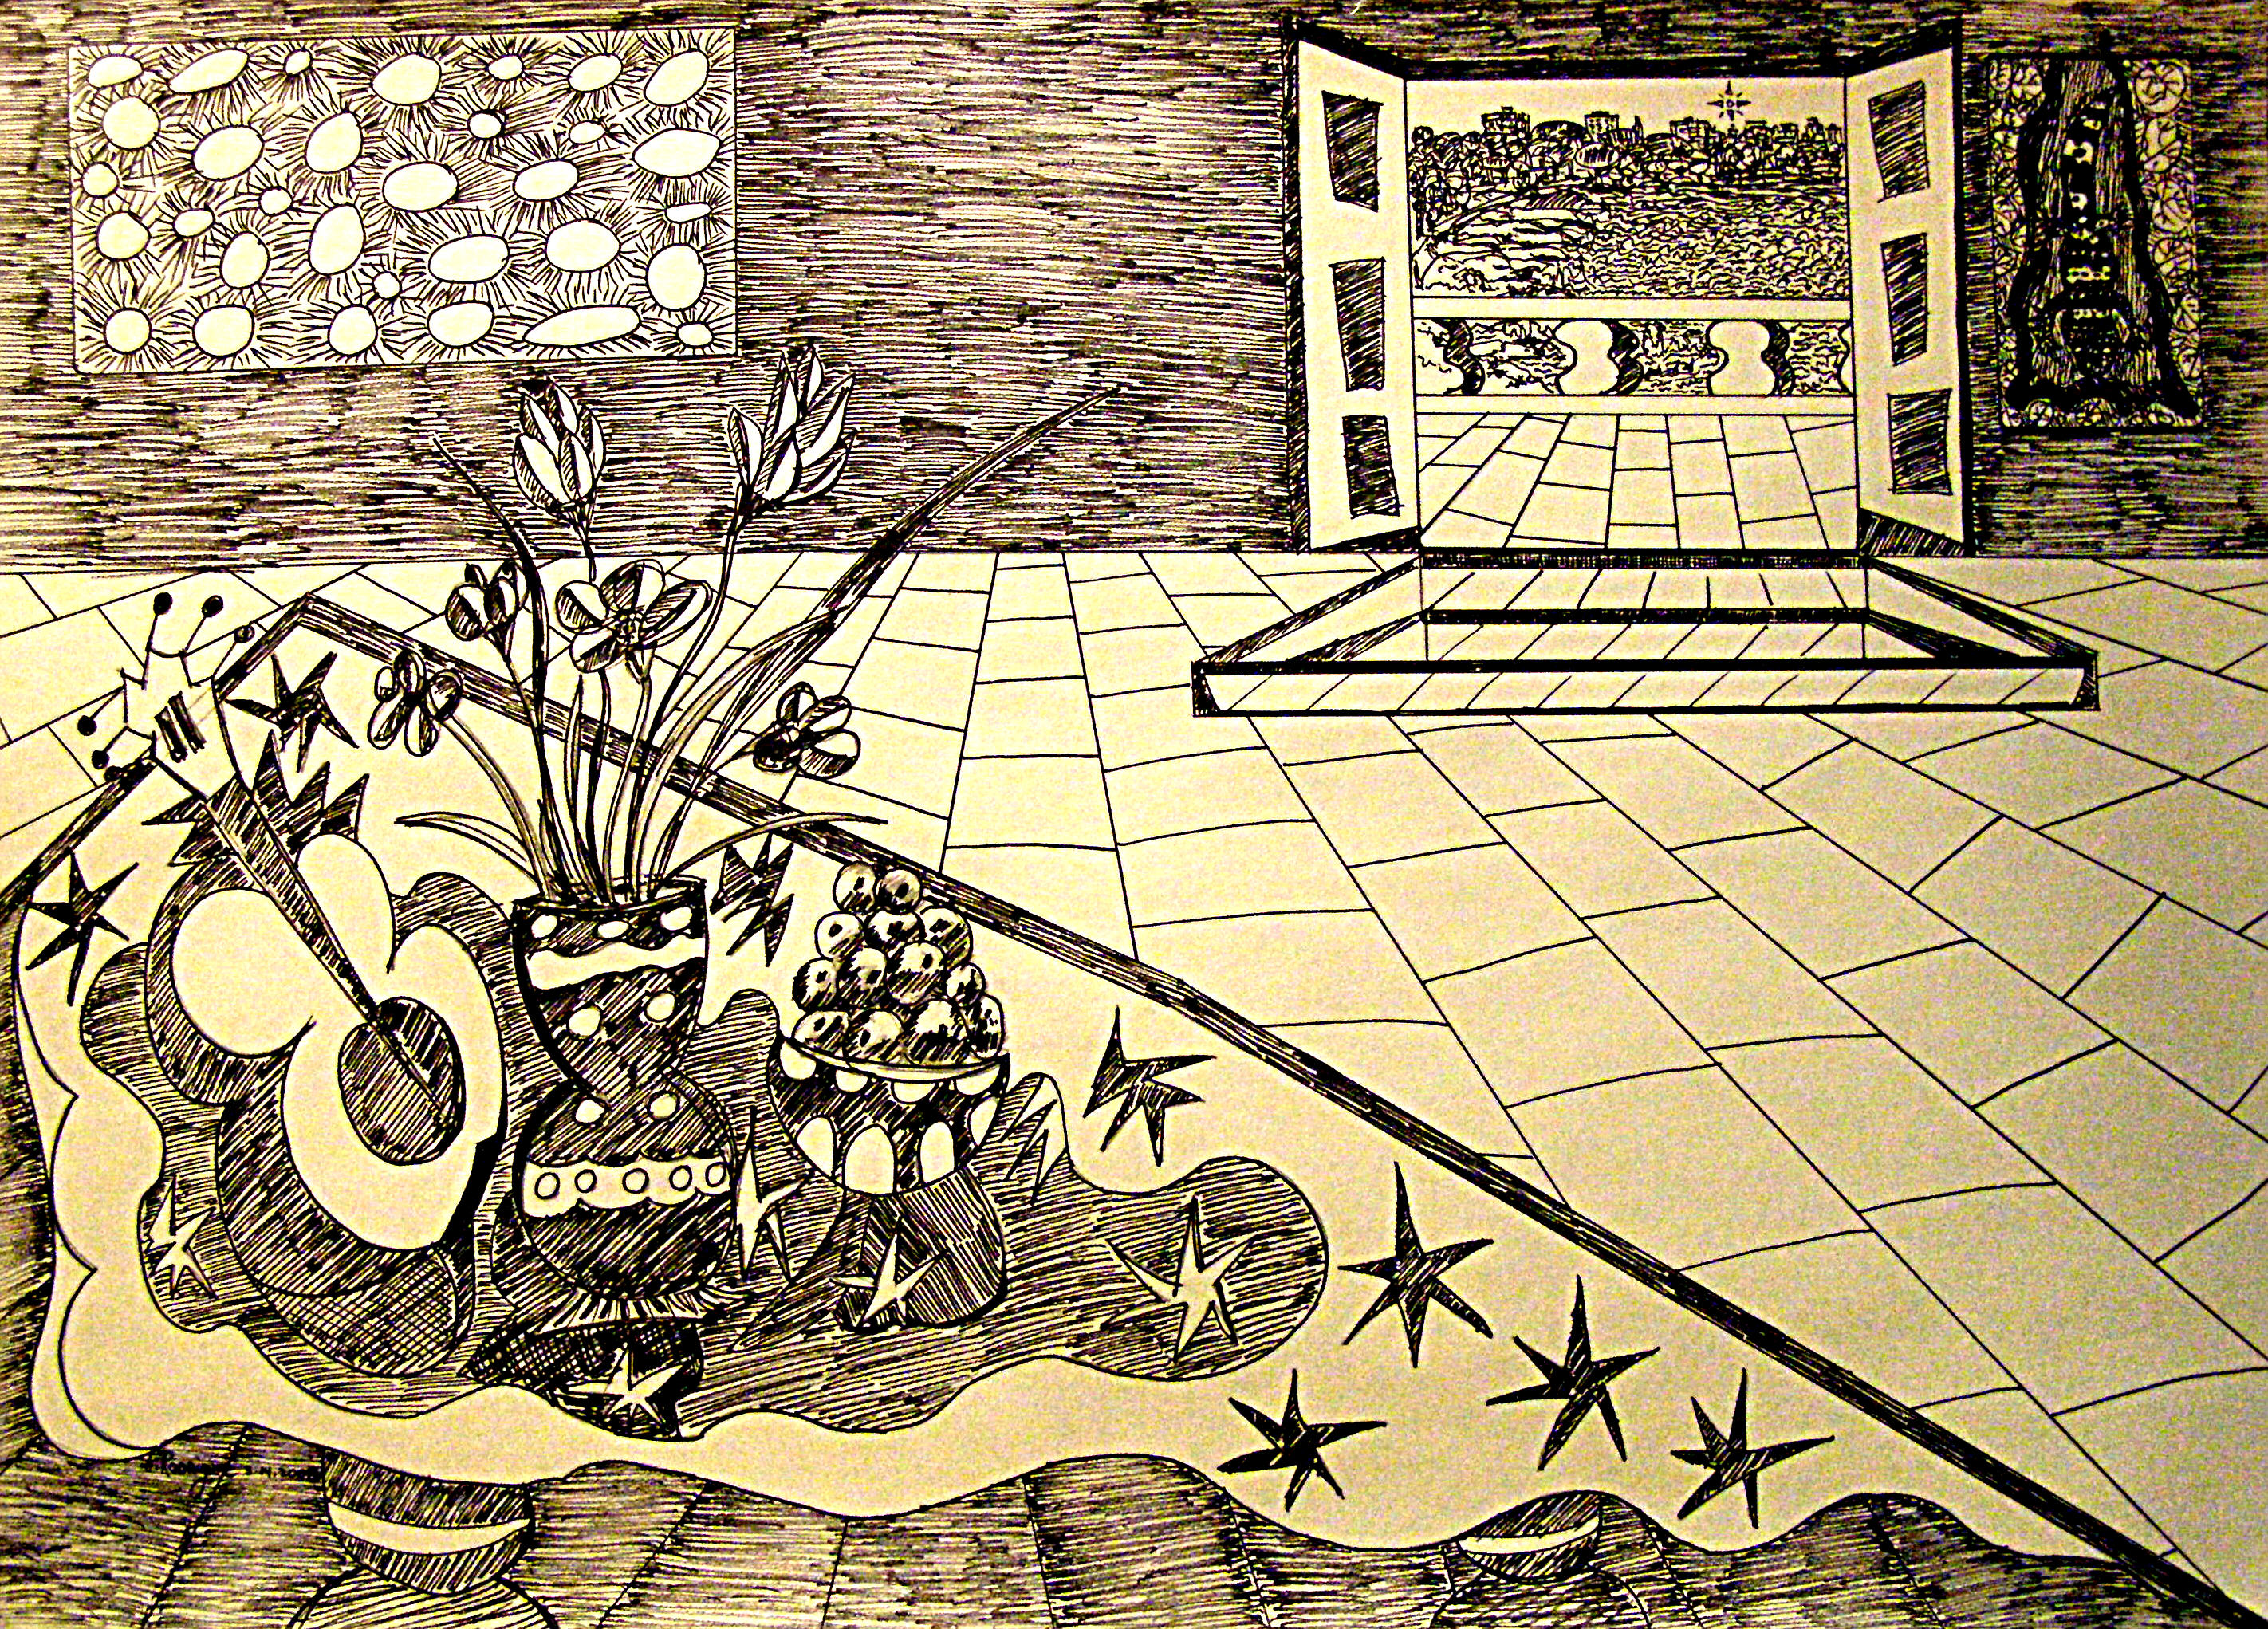 StillLifeWithGilaMonstersI-3-14-2008ink30x42in1.jpg